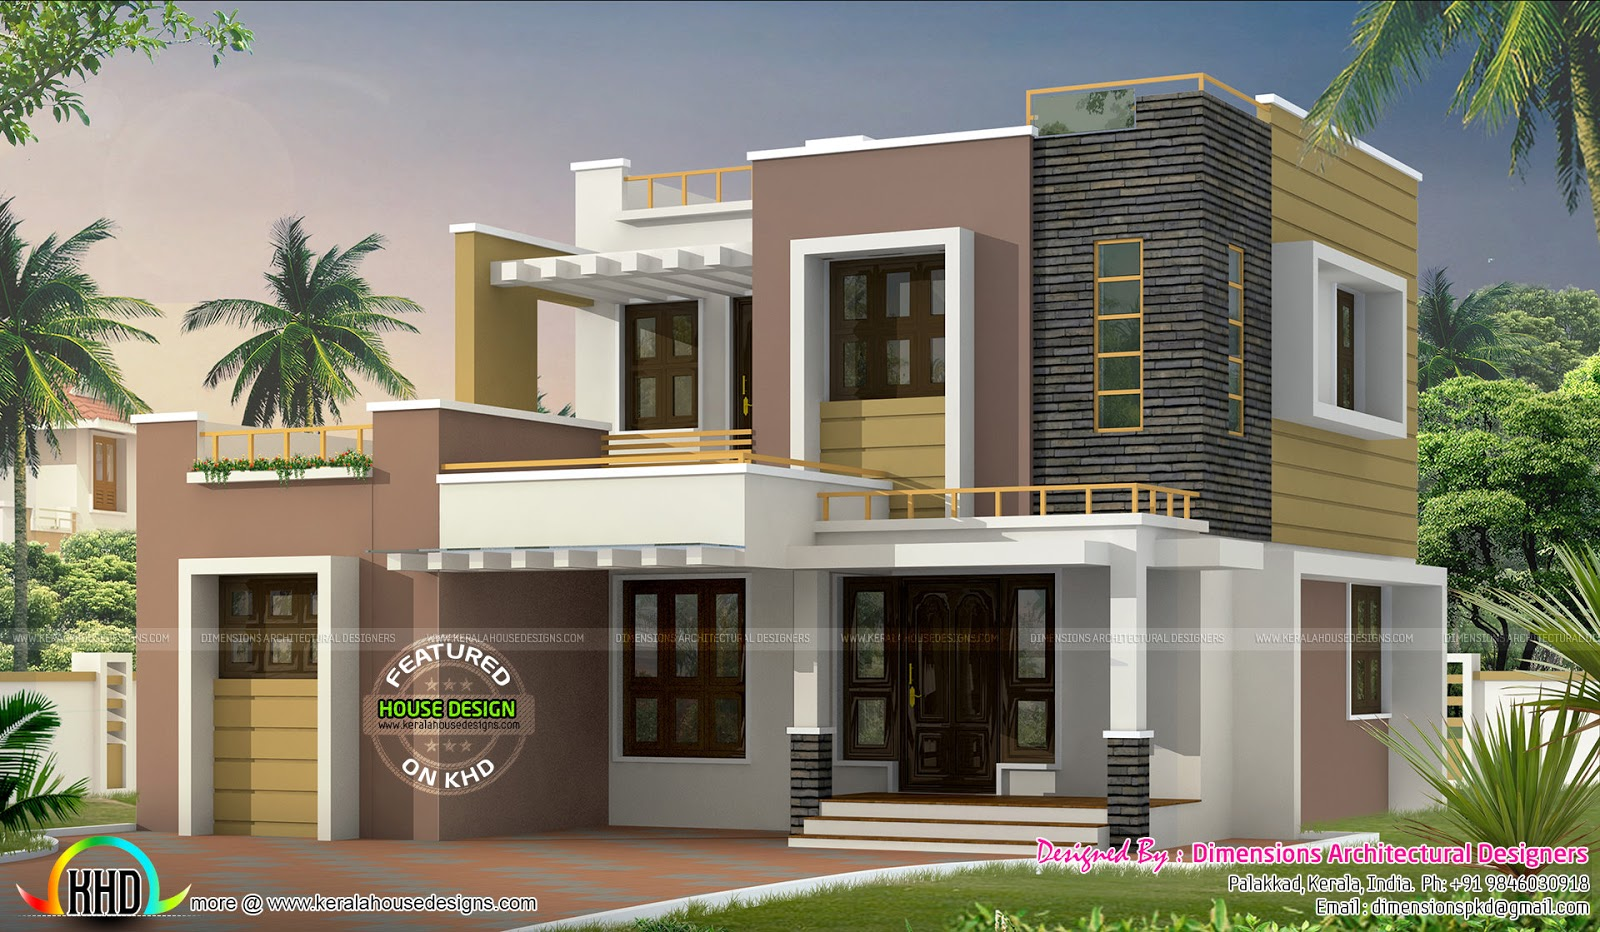 Kerala model house plans 1500 sq ft joy studio design for House plans below 1500 sq ft kerala model